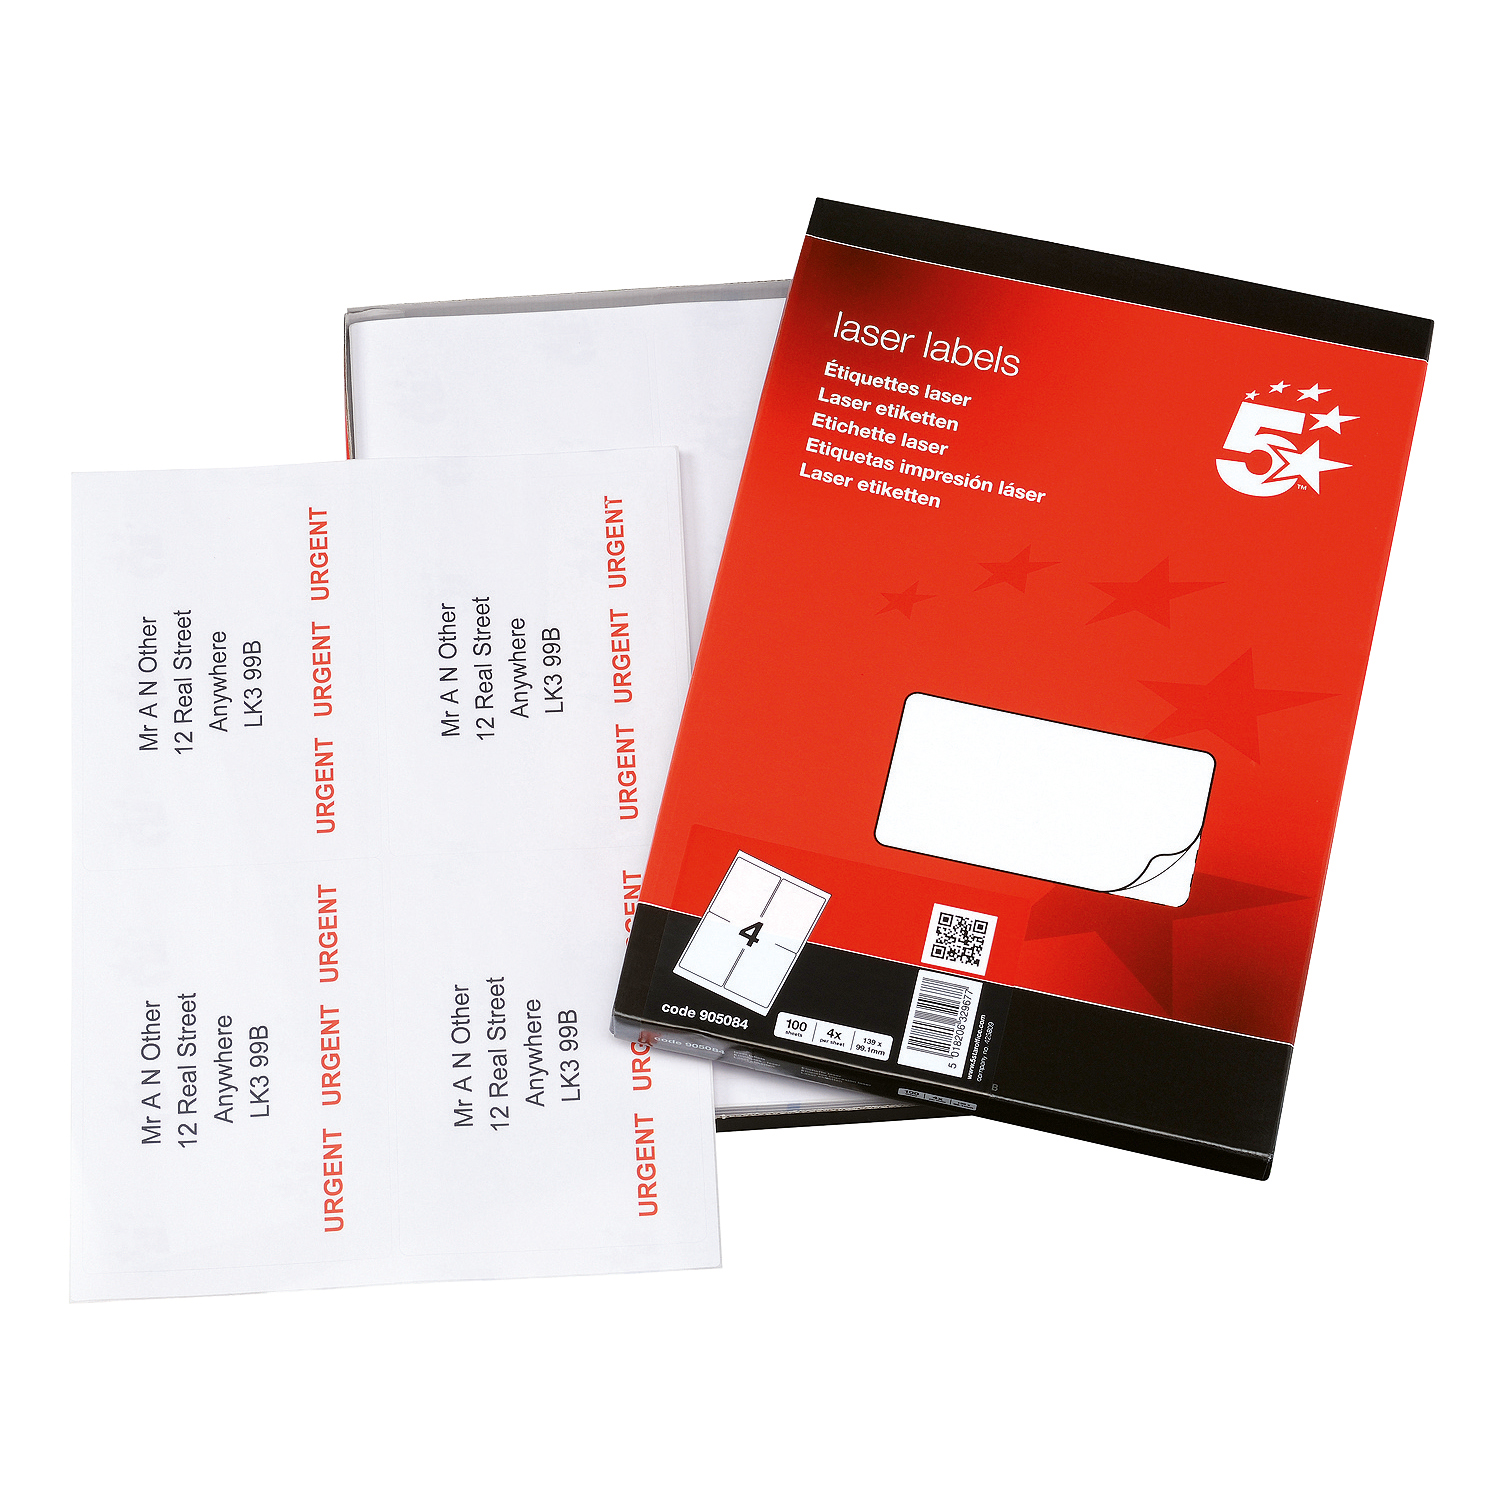 5 Star Office Multipurpose Labels Laser Copier and Inkjet 4 per Sheet 139x99.1mm White 400 Labels